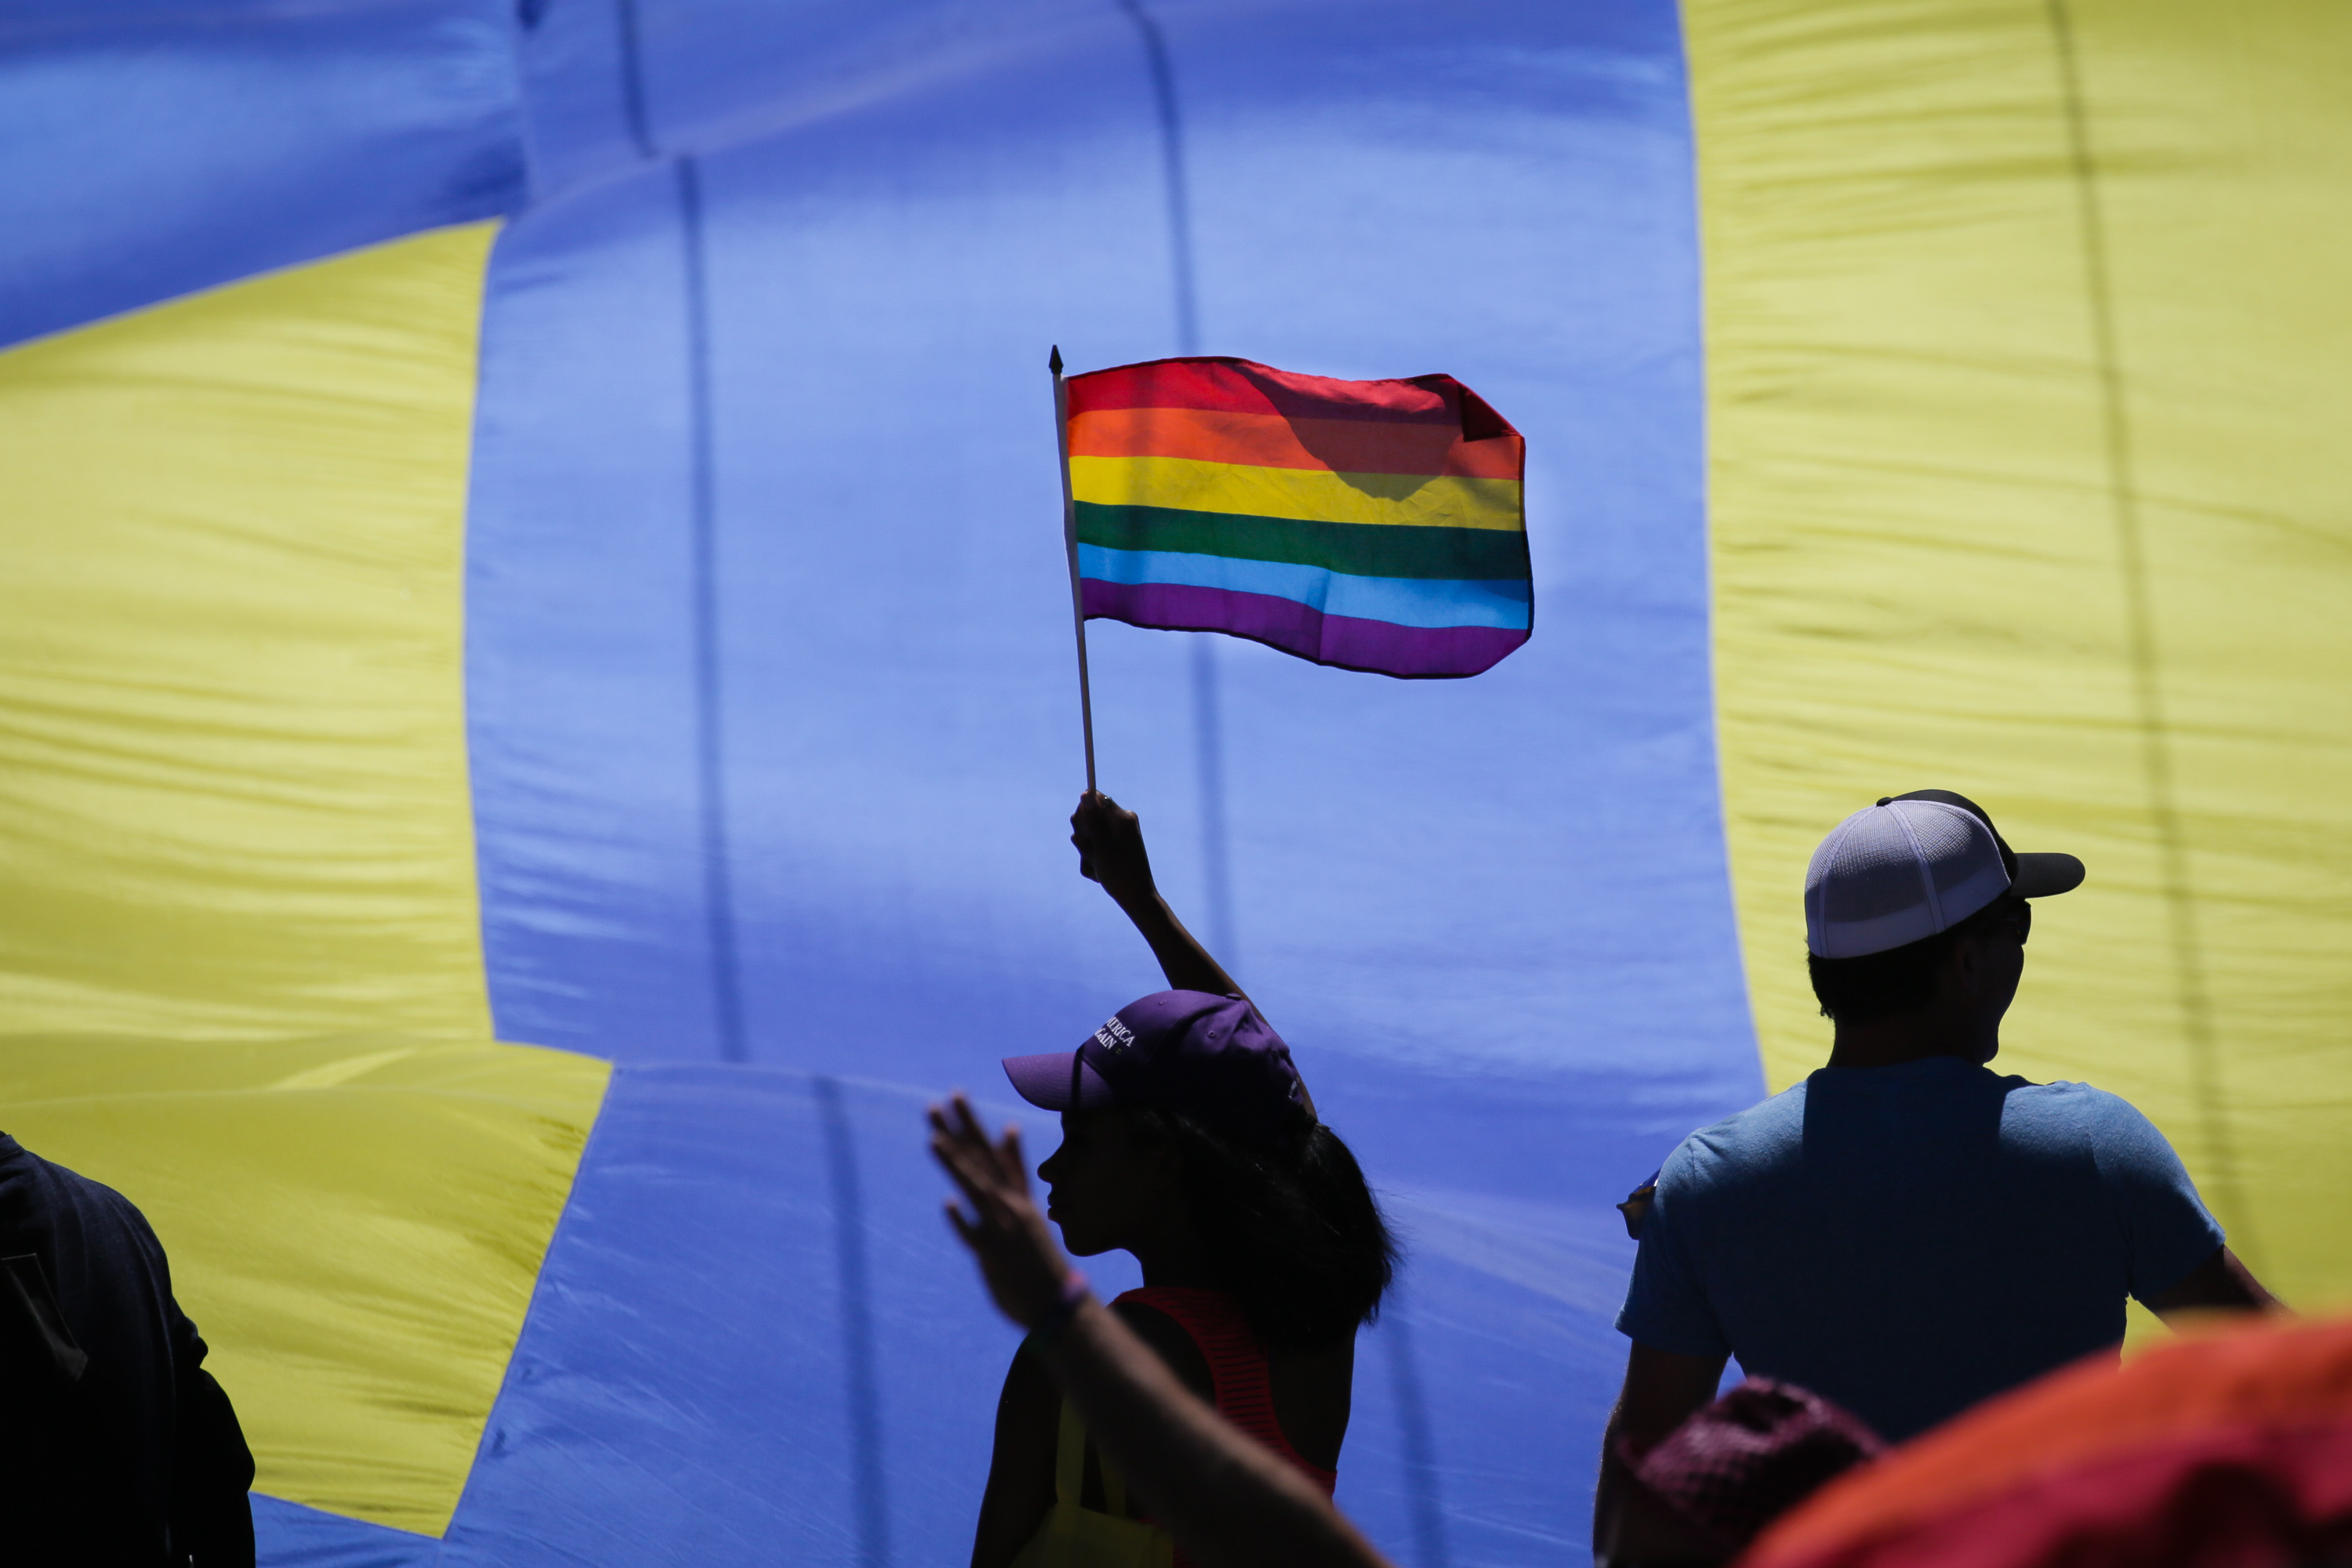 A woman waving a rainbow flag in the annual LGBTQI Pride Parade on Sunday, June 25, 2017, in San Francisco, California.